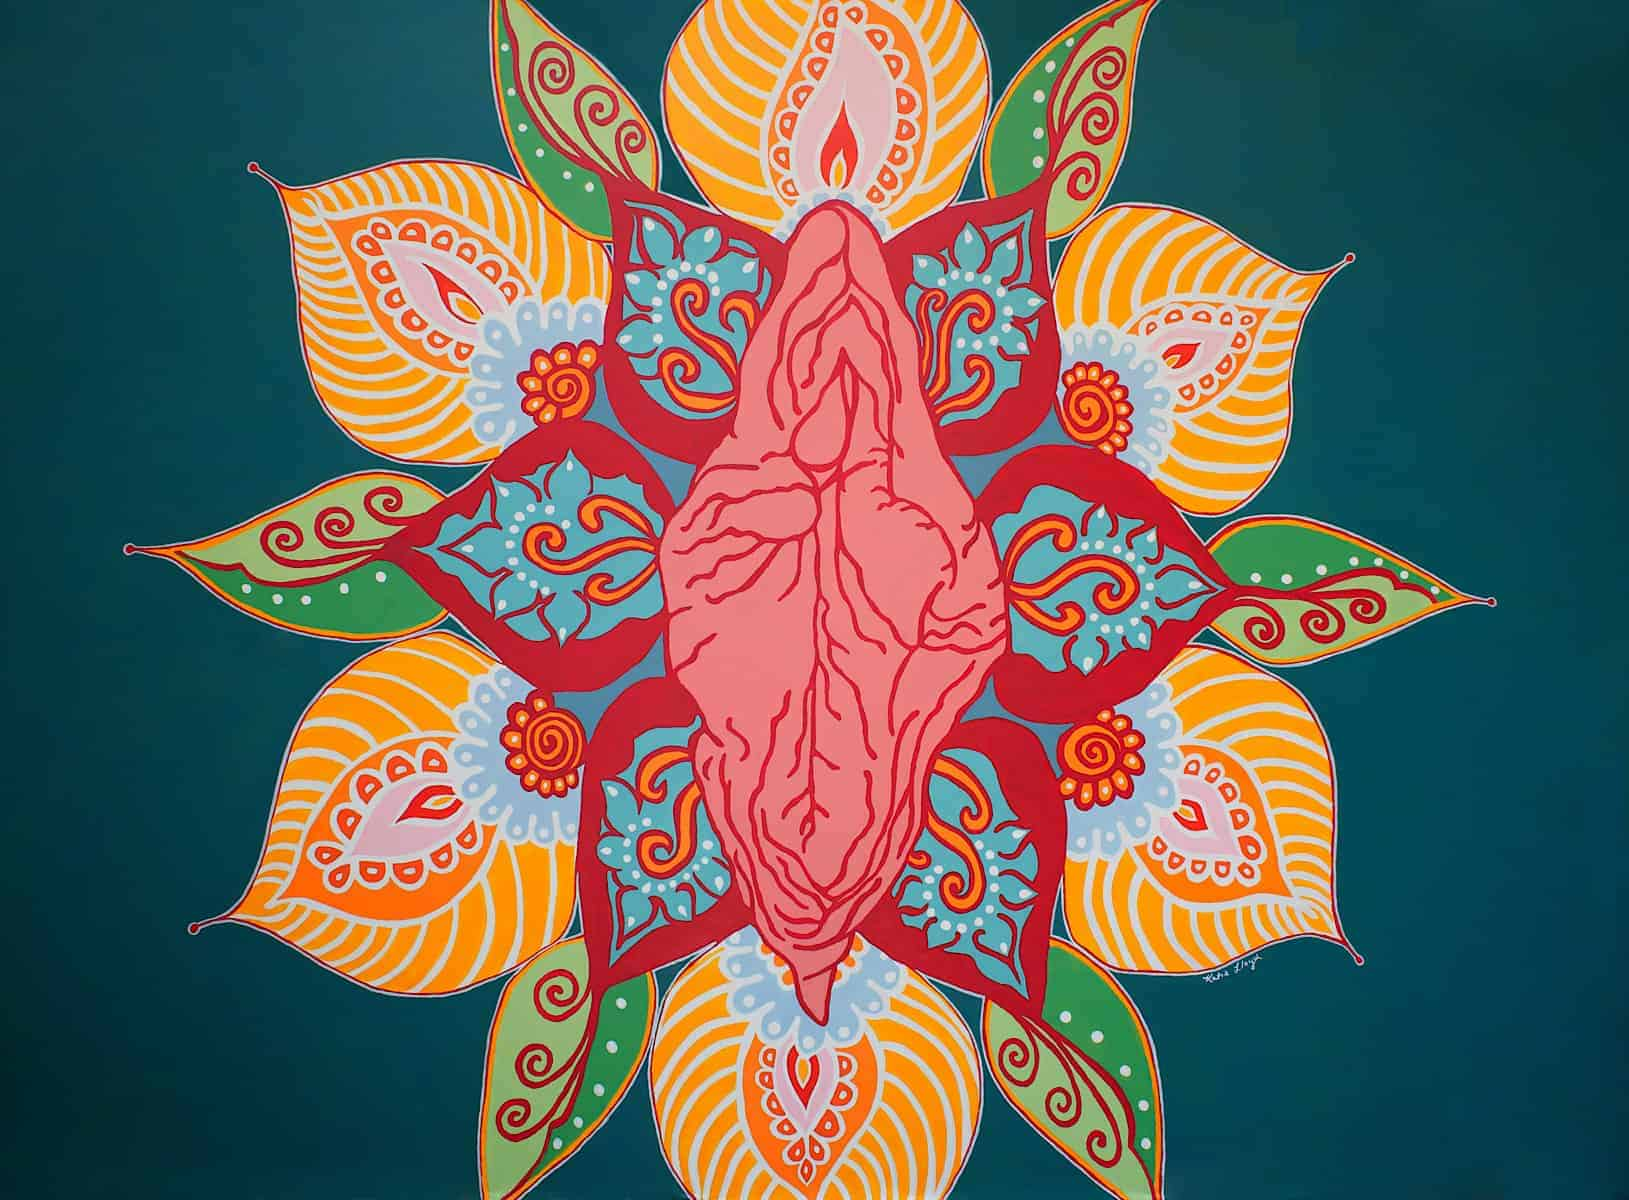 Vagina Flower yoni Mandala in green and yellow